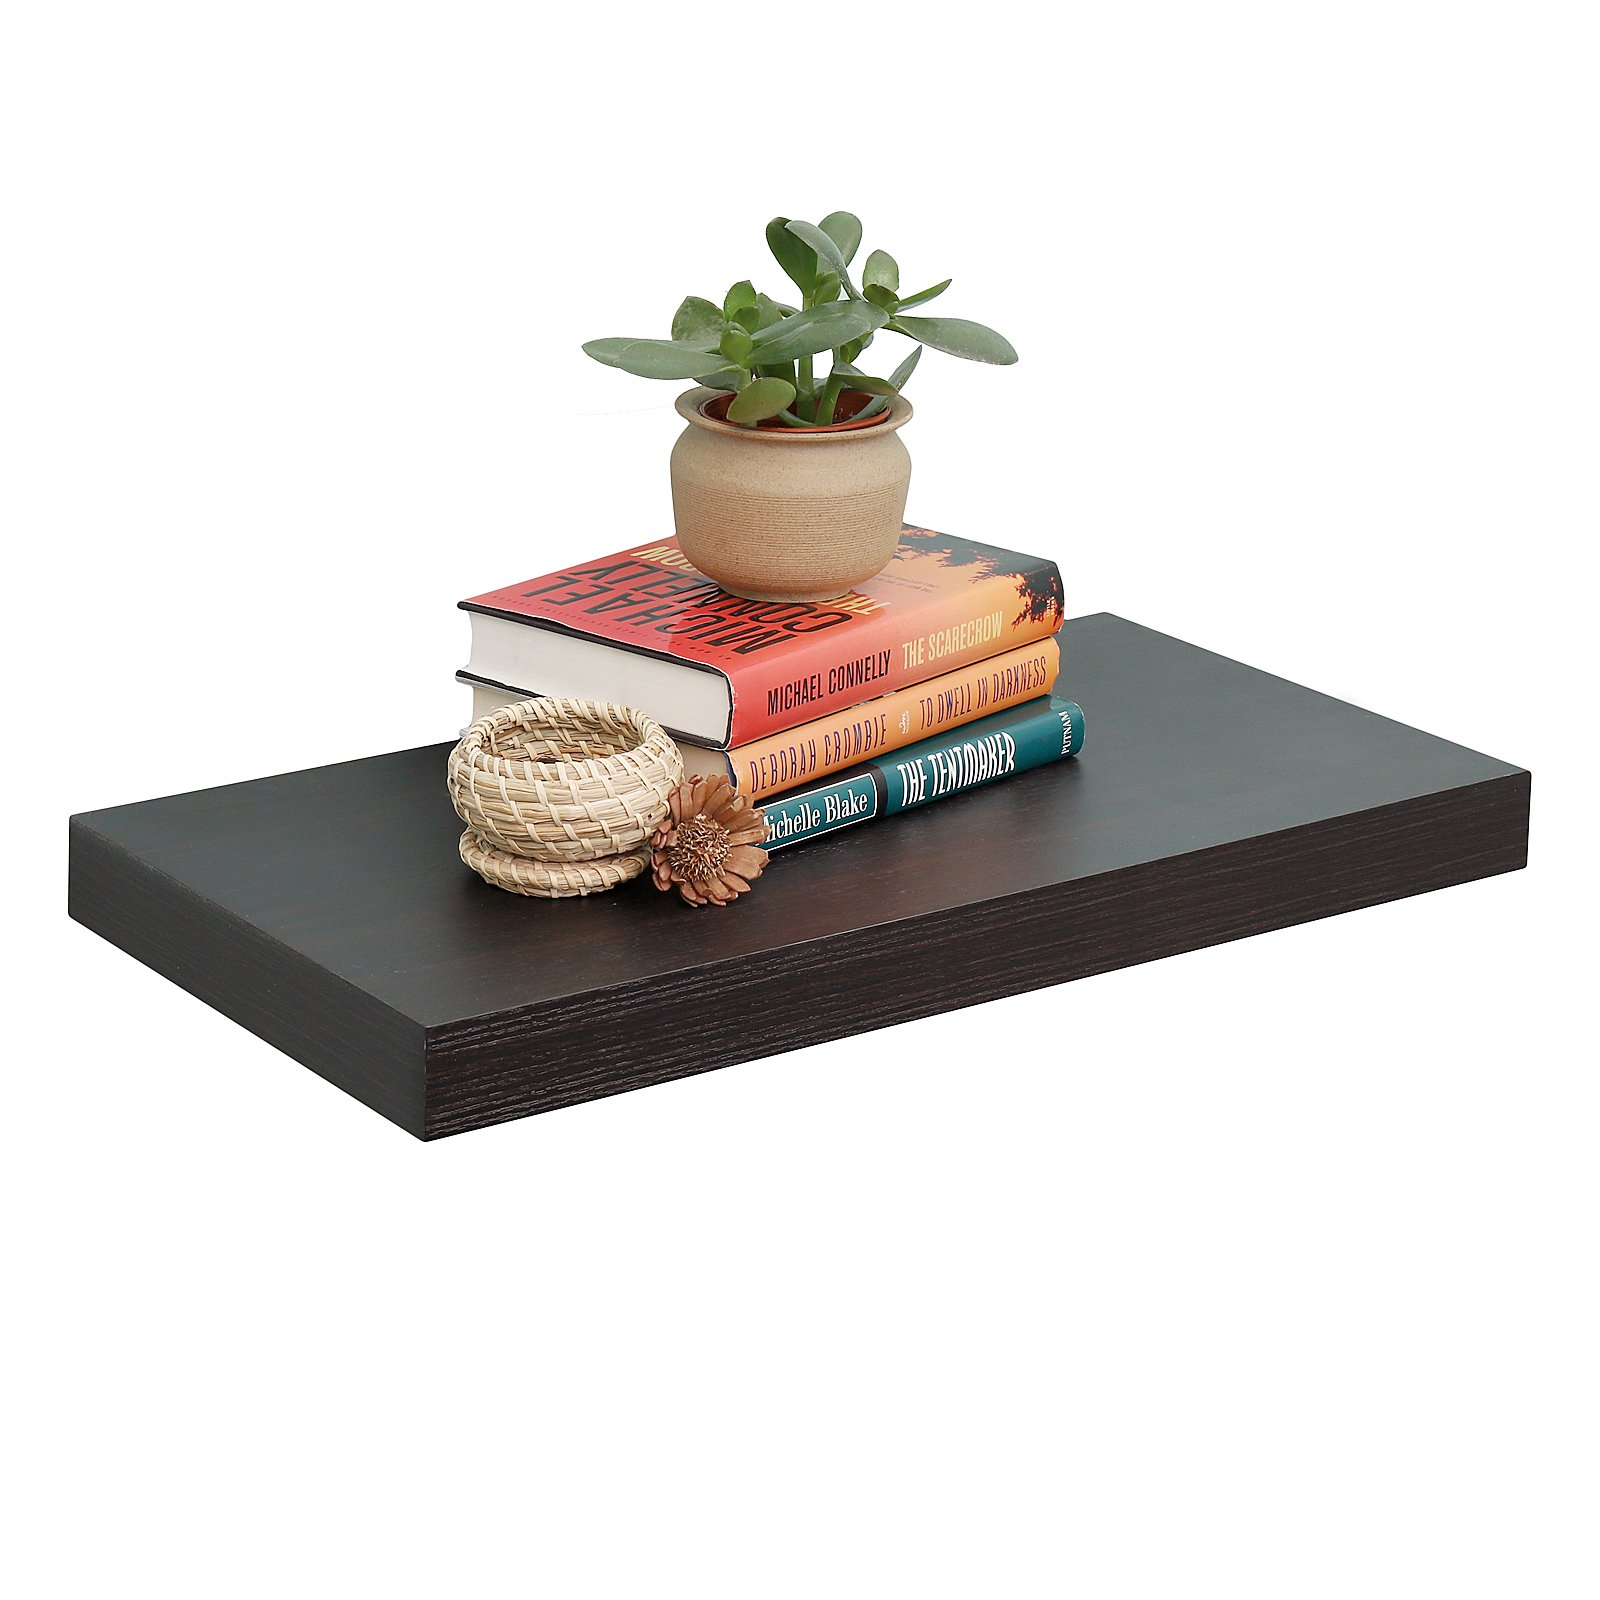 WELLAND 12'' Depth Floating Wall Shelf Display Floating Shelf, 24''L x 12''D x 2''T, Deeper Than Others, Espresso